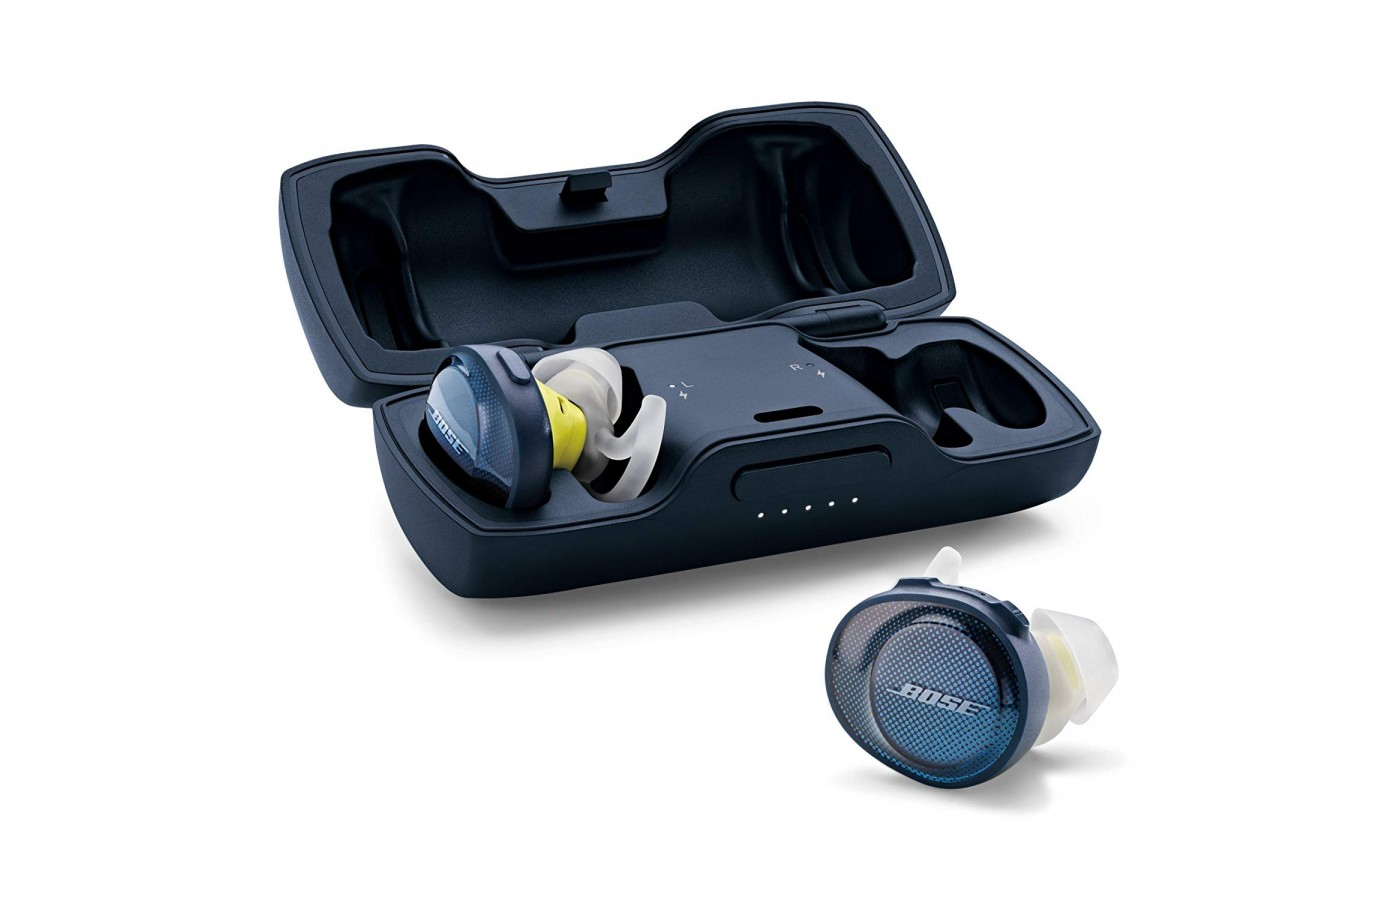 The earbuds come with a hard plastic case and charging cord.